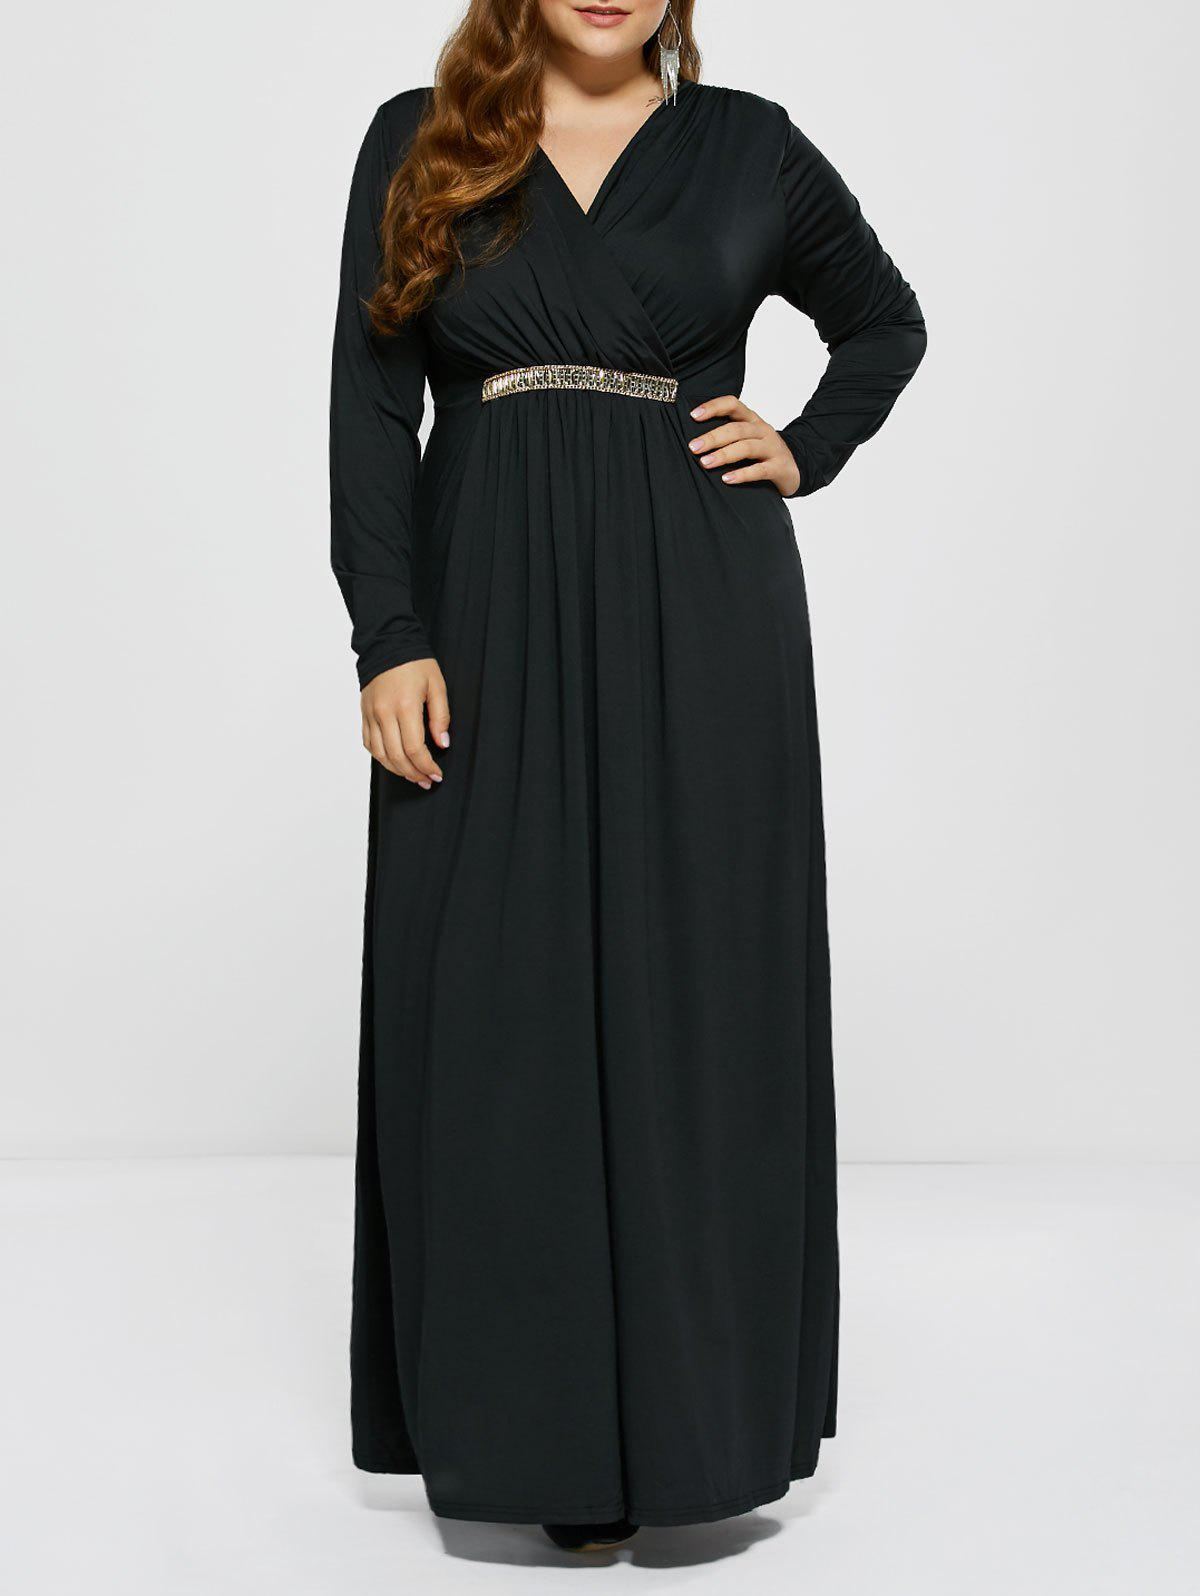 Plus Size Maxi Surplice Long Sleeve Prom DressWOMEN<br><br>Size: 2XL; Color: BLACK; Style: Club; Material: Polyester; Silhouette: A-Line; Dresses Length: Floor-Length; Neckline: V-Neck; Sleeve Length: Long Sleeves; Pattern Type: Solid; With Belt: No; Season: Fall,Spring; Weight: 0.477kg; Package Contents: 1 x Dress;